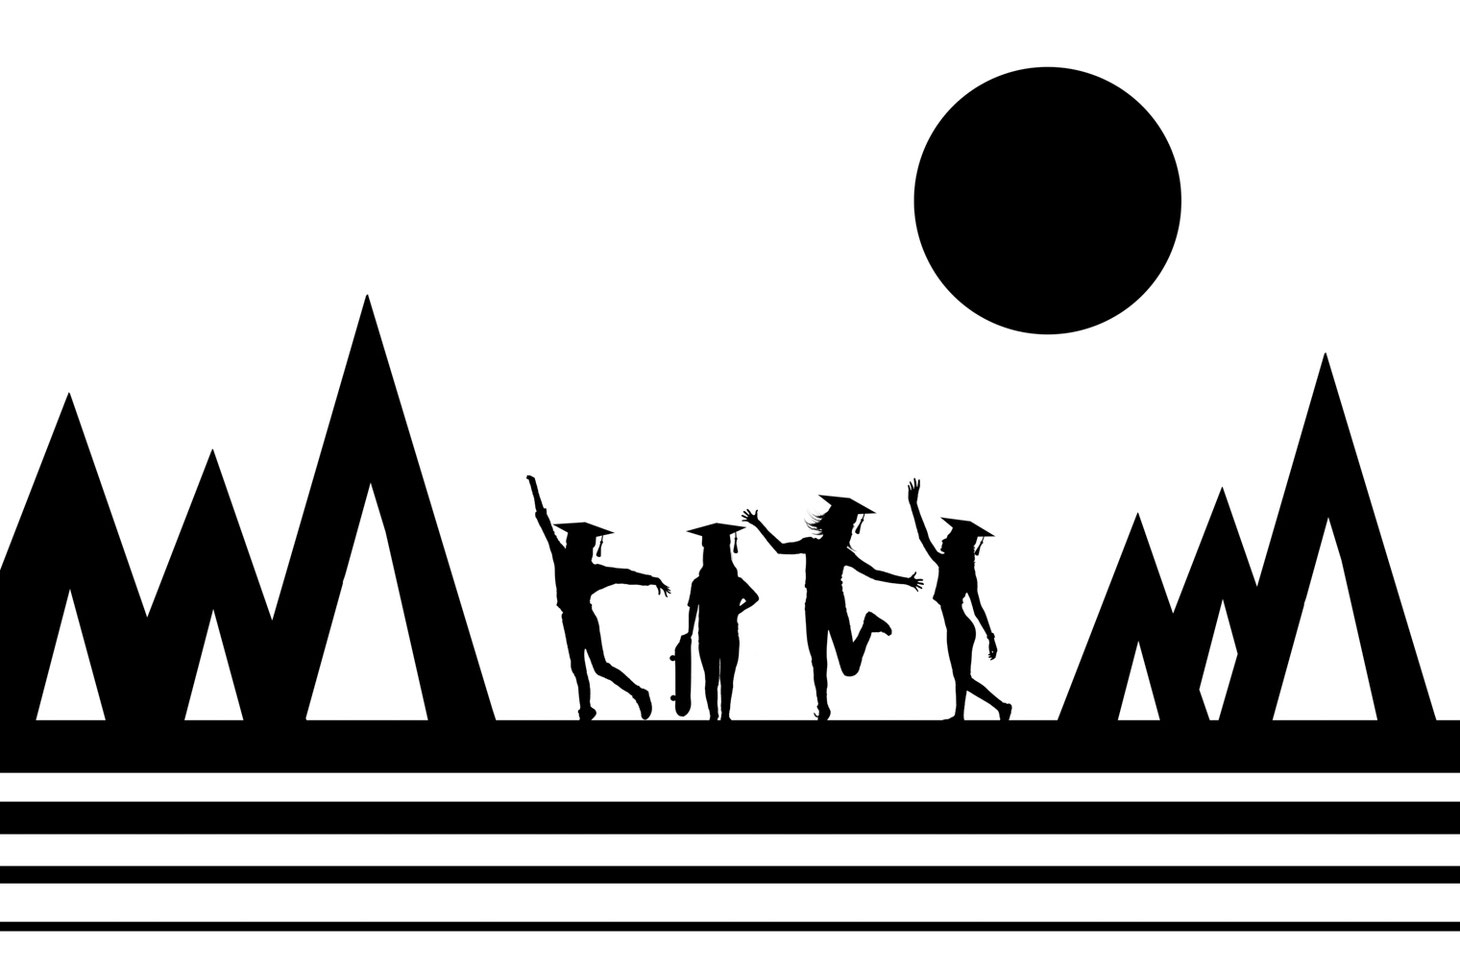 silhouettes of 4 girls on a black and white abstract digital backdrop of lines, triangles, and a circle for a sun. Image is black and white.